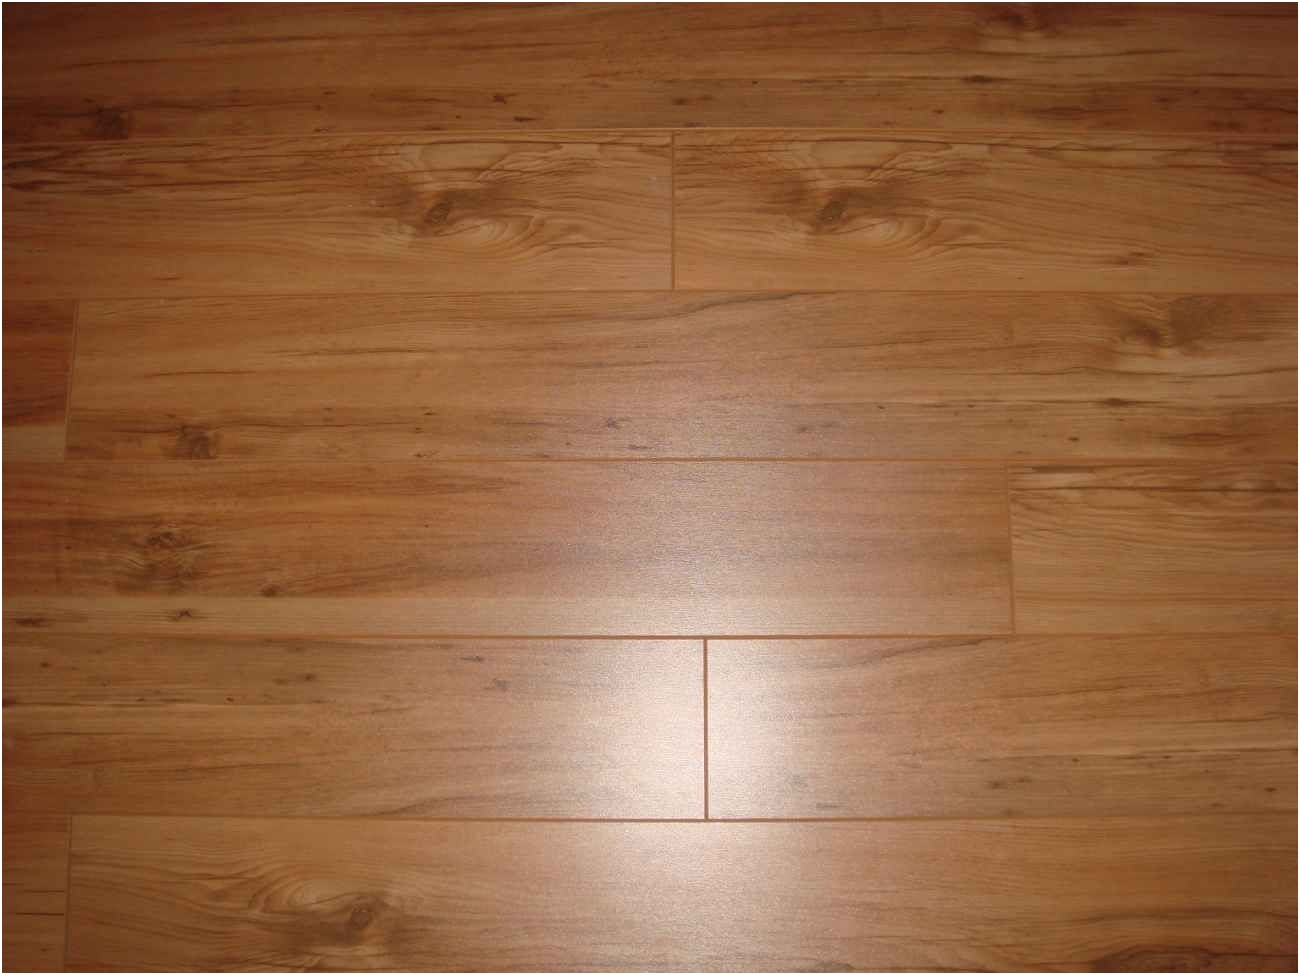 3 4 hardwood flooring of hardwood flooring over ceramic tile stock 3 4 x 4 3 4 solid golden intended for hardwood flooring over ceramic tile galerie tile that looks like hardwood floors elegant i pinimg 736x